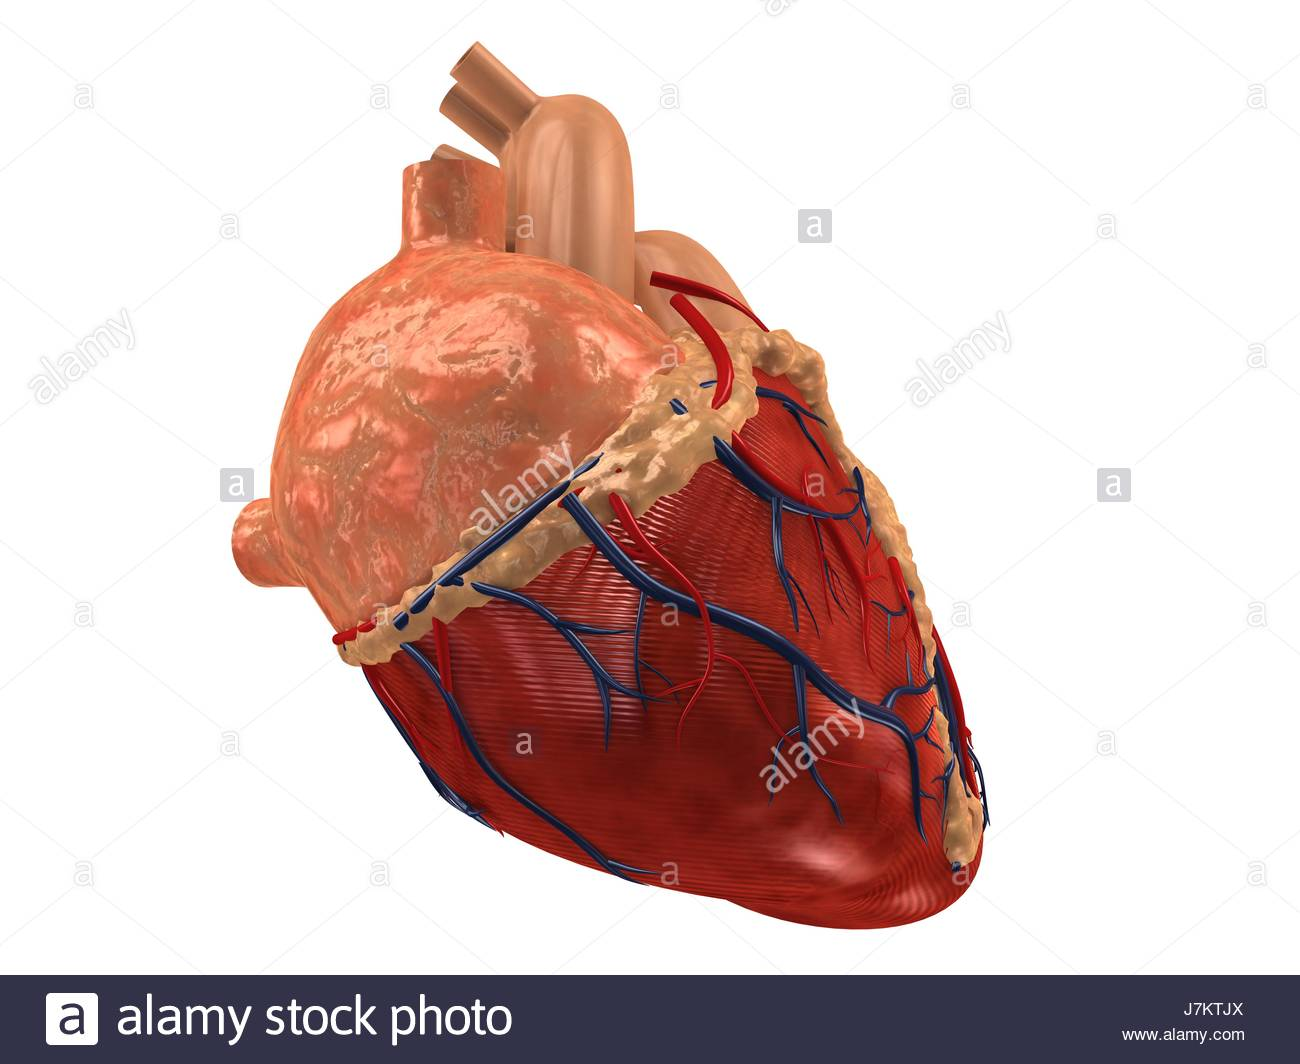 Health Human Human Being Heart Attack Heartbeat Anatomy Organ Body